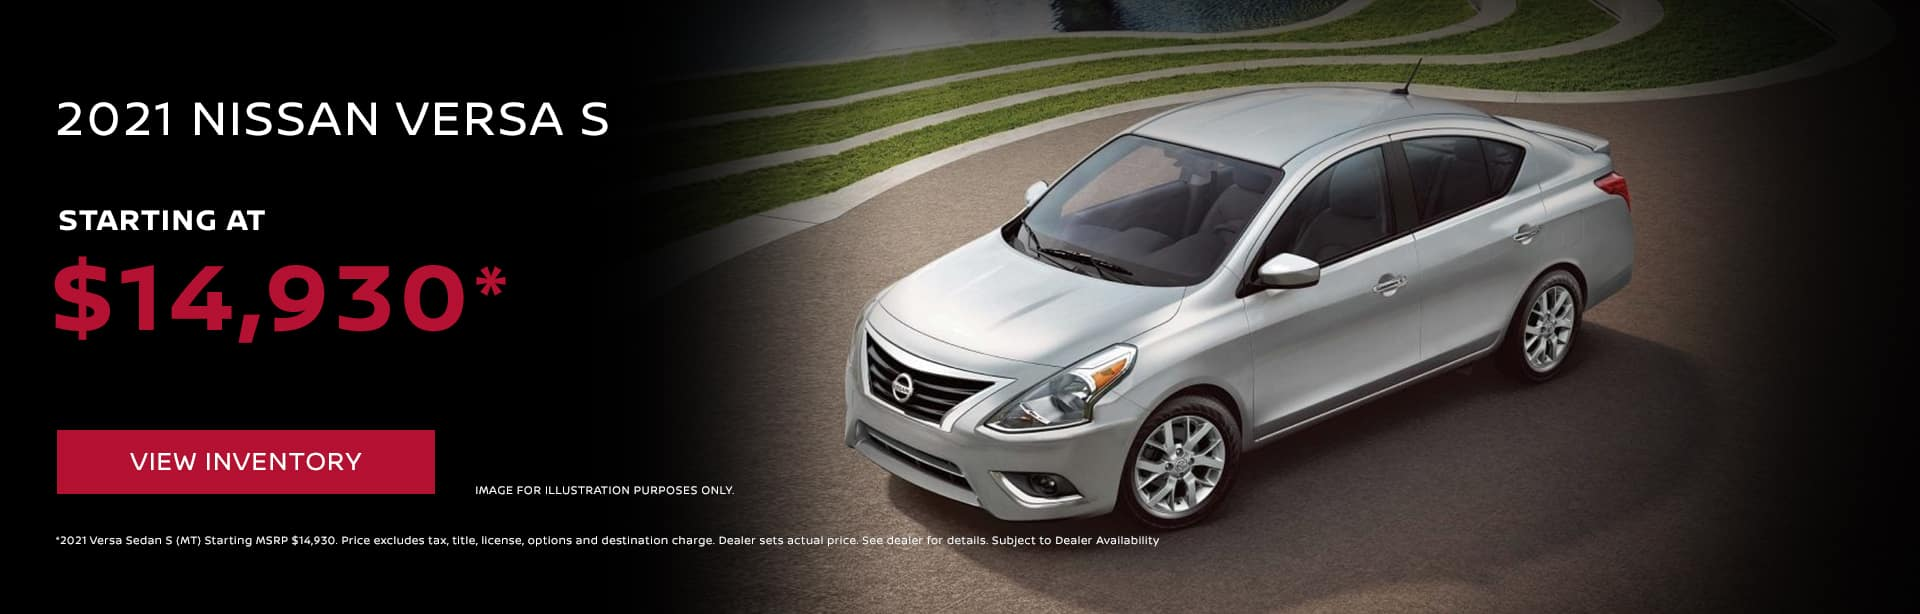 2021 Nissan Versa S Starting at $14,930*